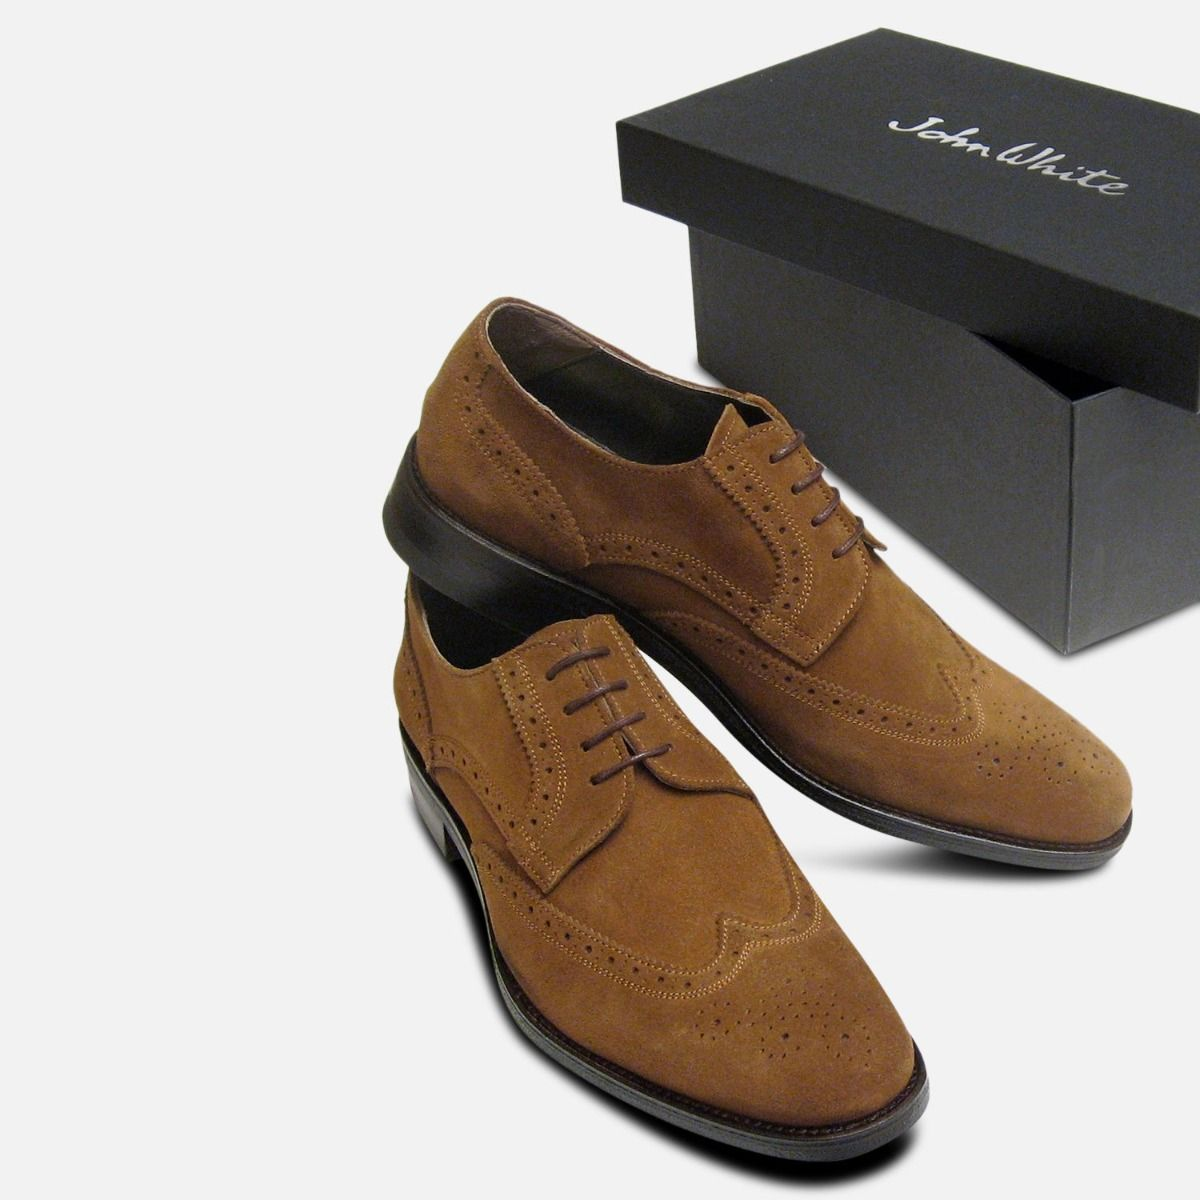 Tobacco Snuff Suede Brogues for Men by